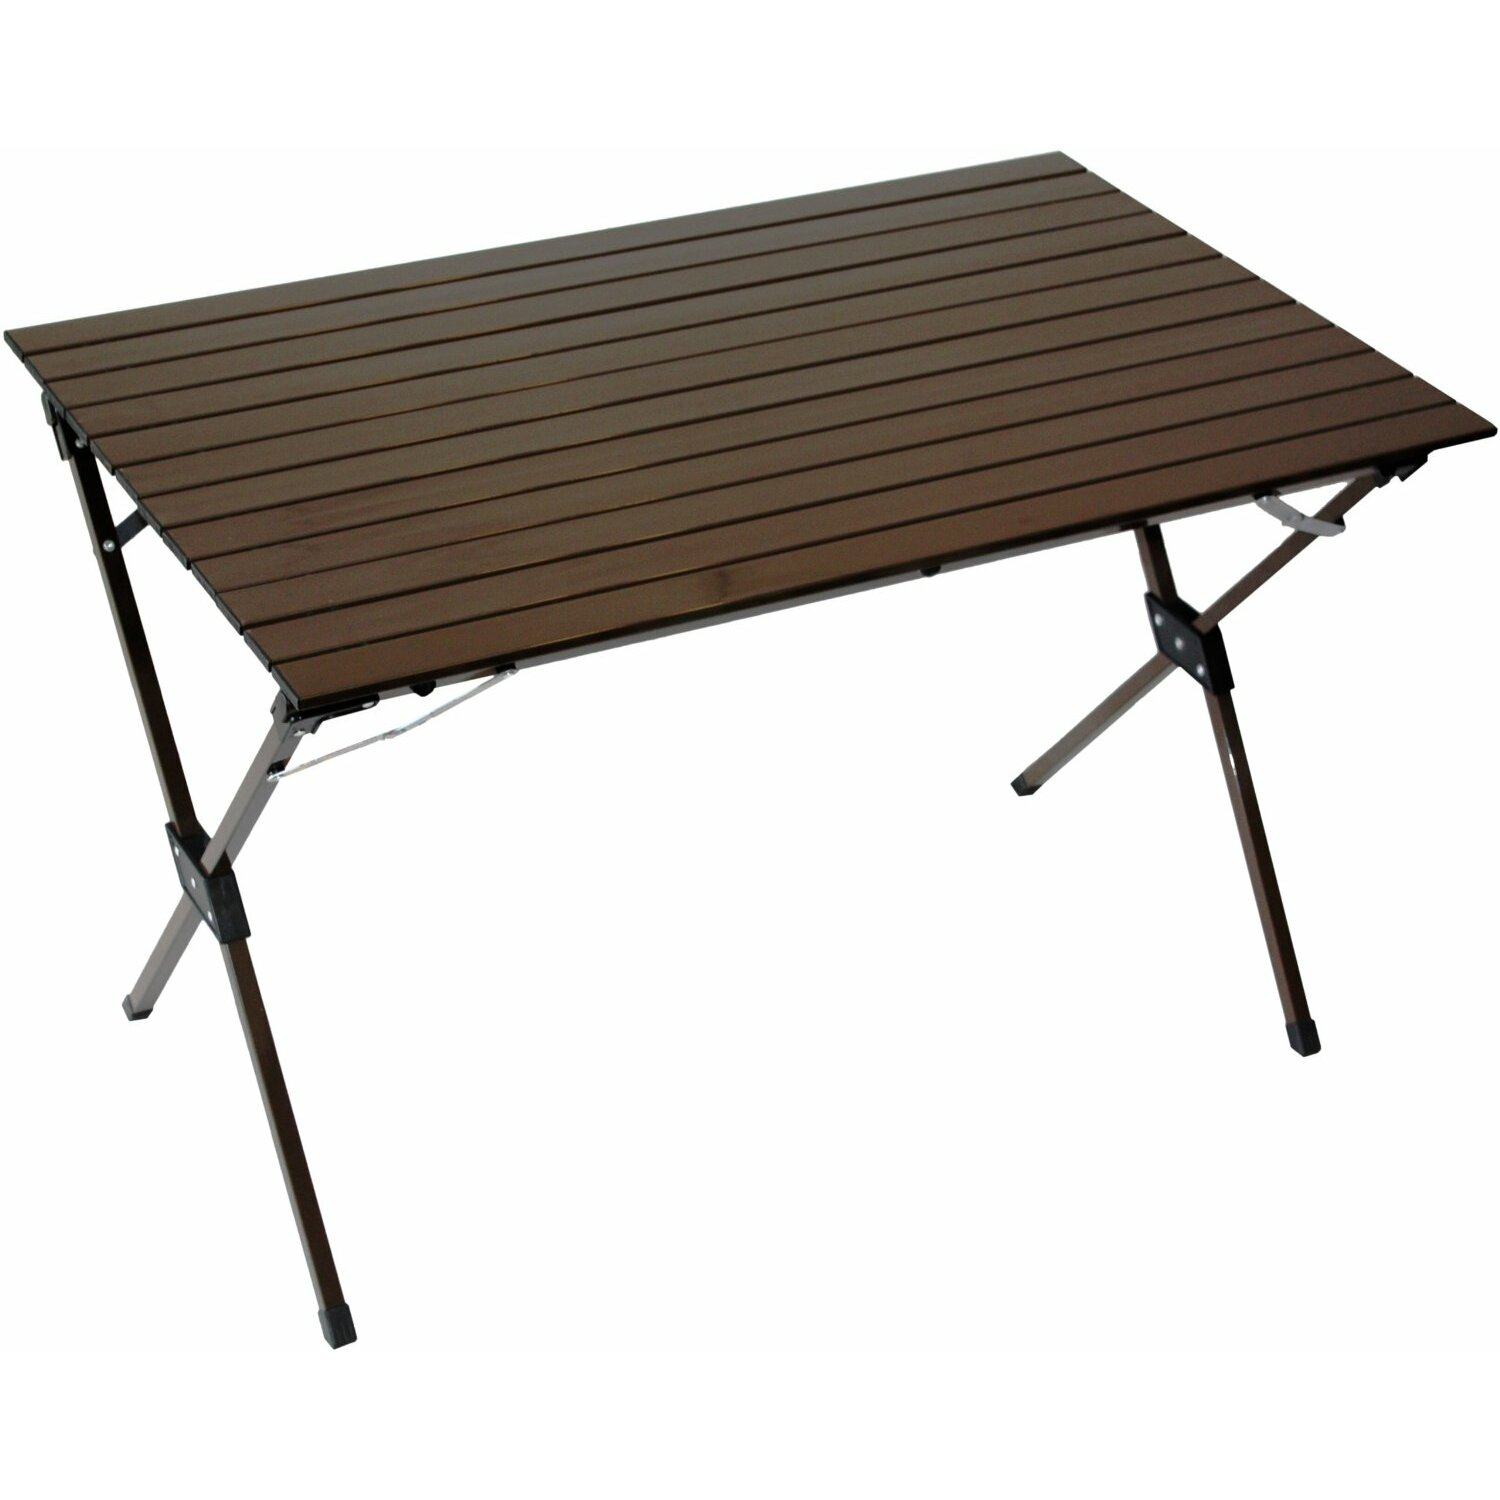 string light co portable picnic table reviews wayfair. Black Bedroom Furniture Sets. Home Design Ideas